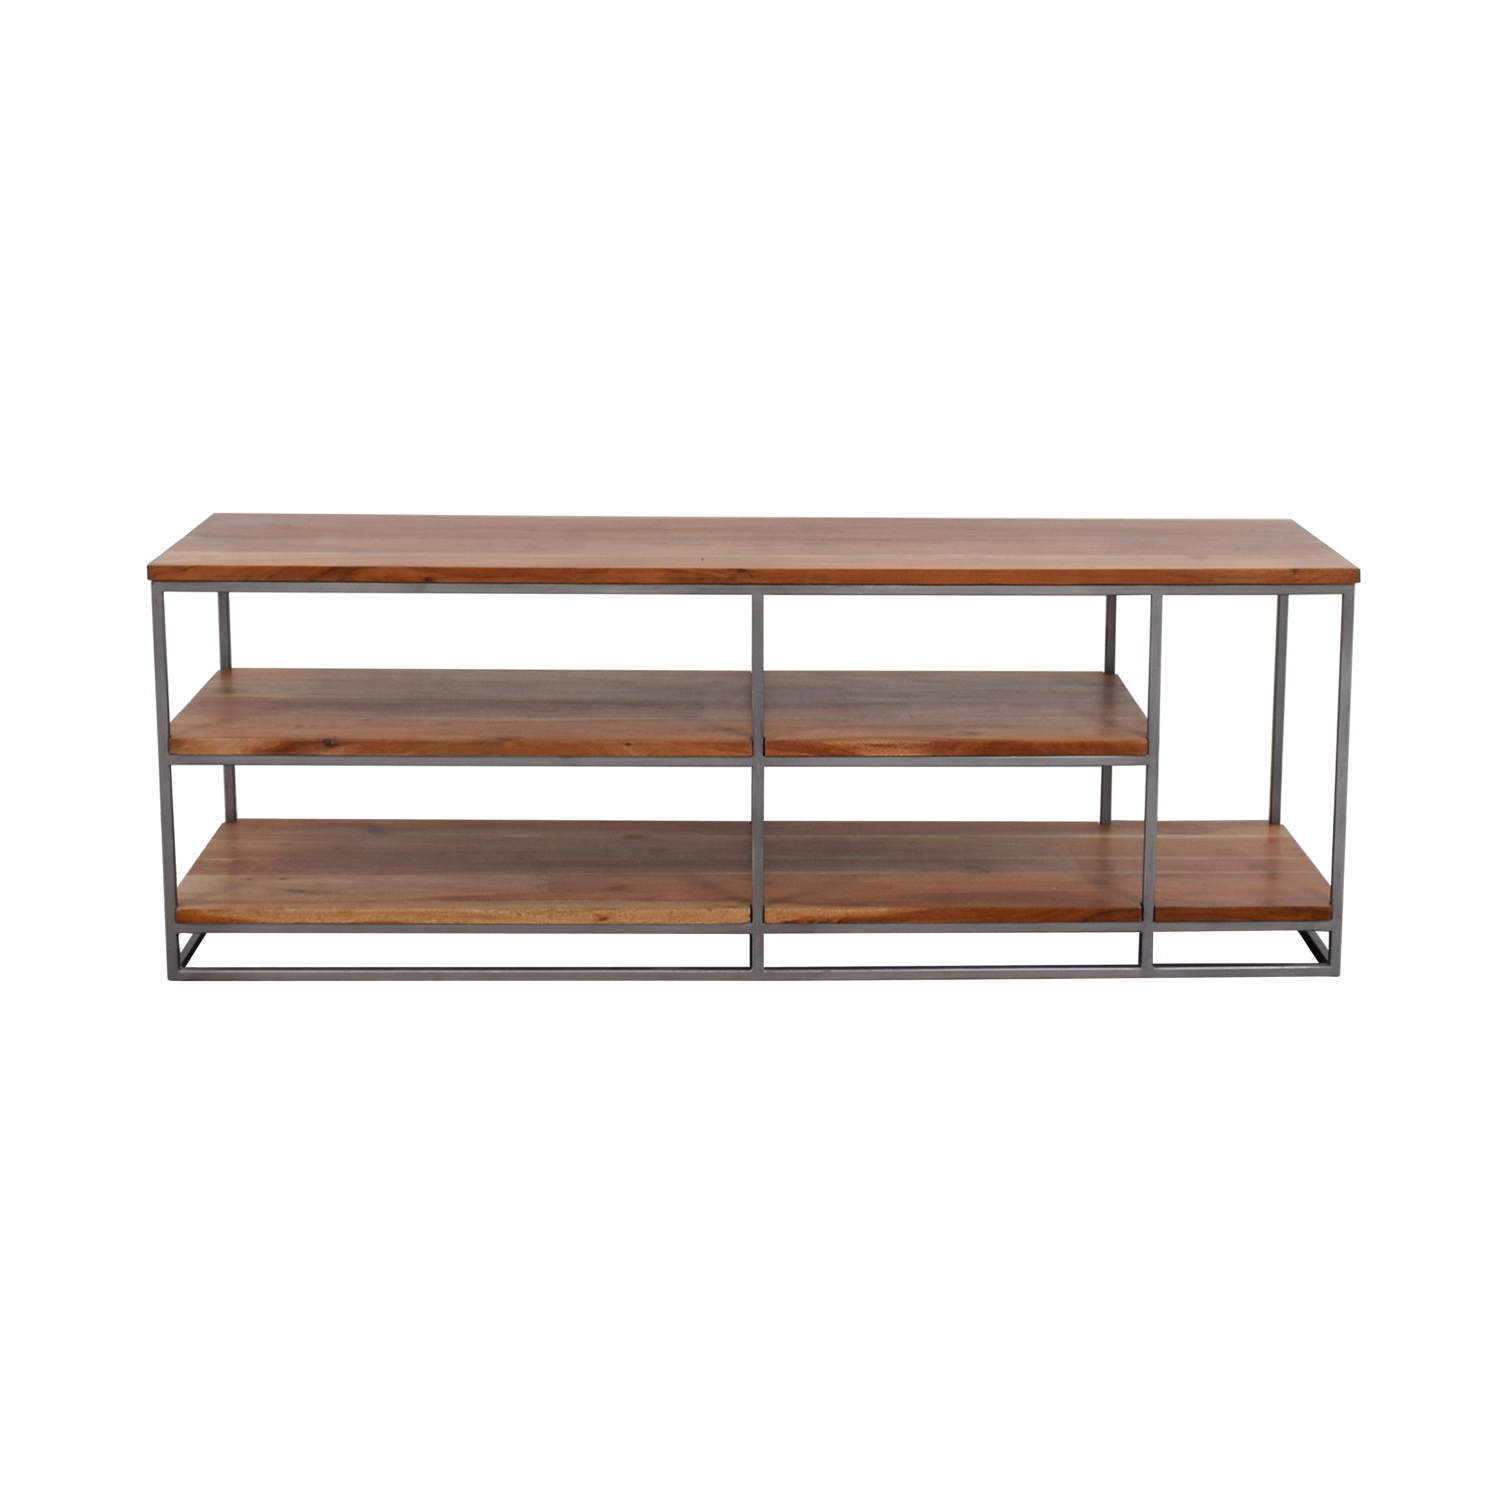 CB2 CB2 Wood and Chrome Credenza dimensions